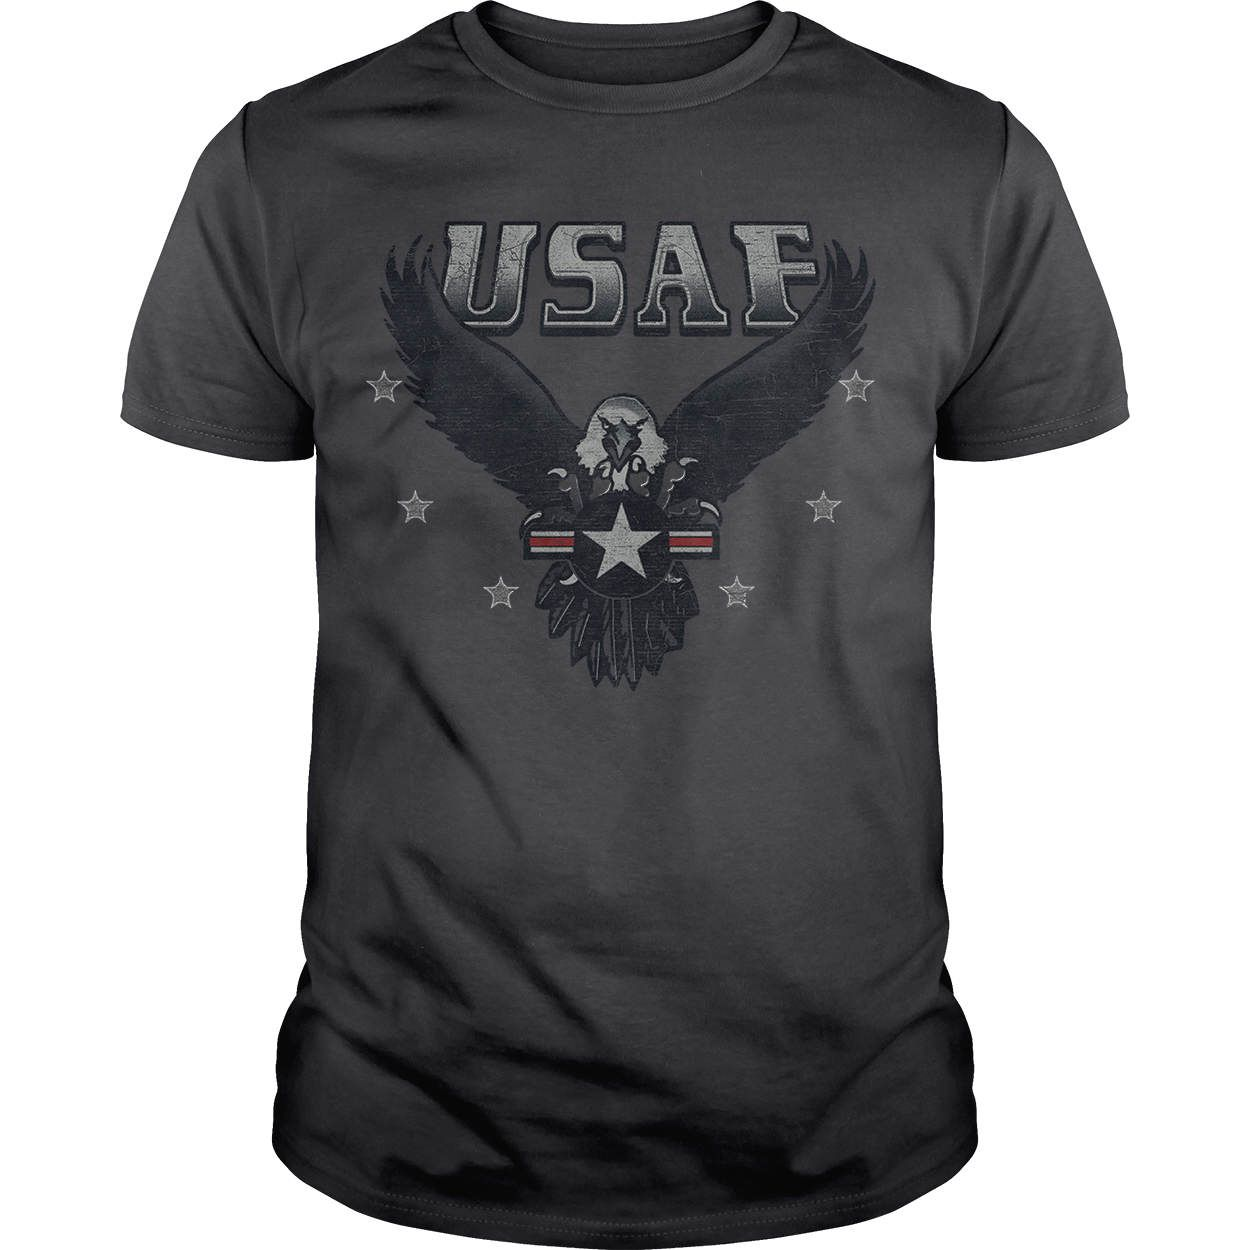 Pin by Mark H. Delfs on Best Selling TShirts Shirts